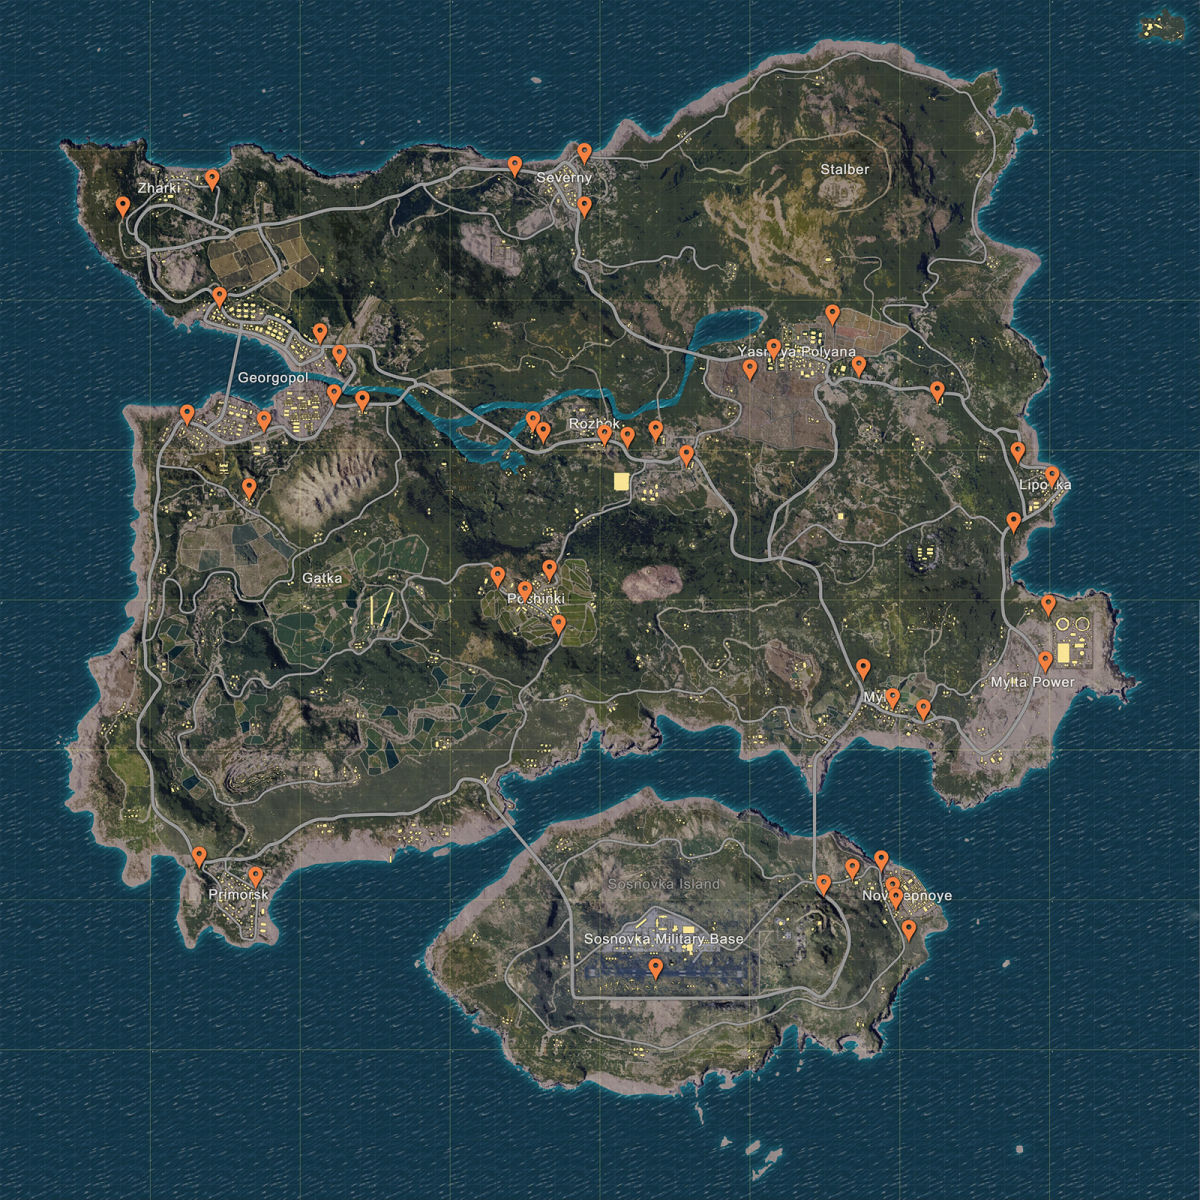 PUBG vehicle spawns